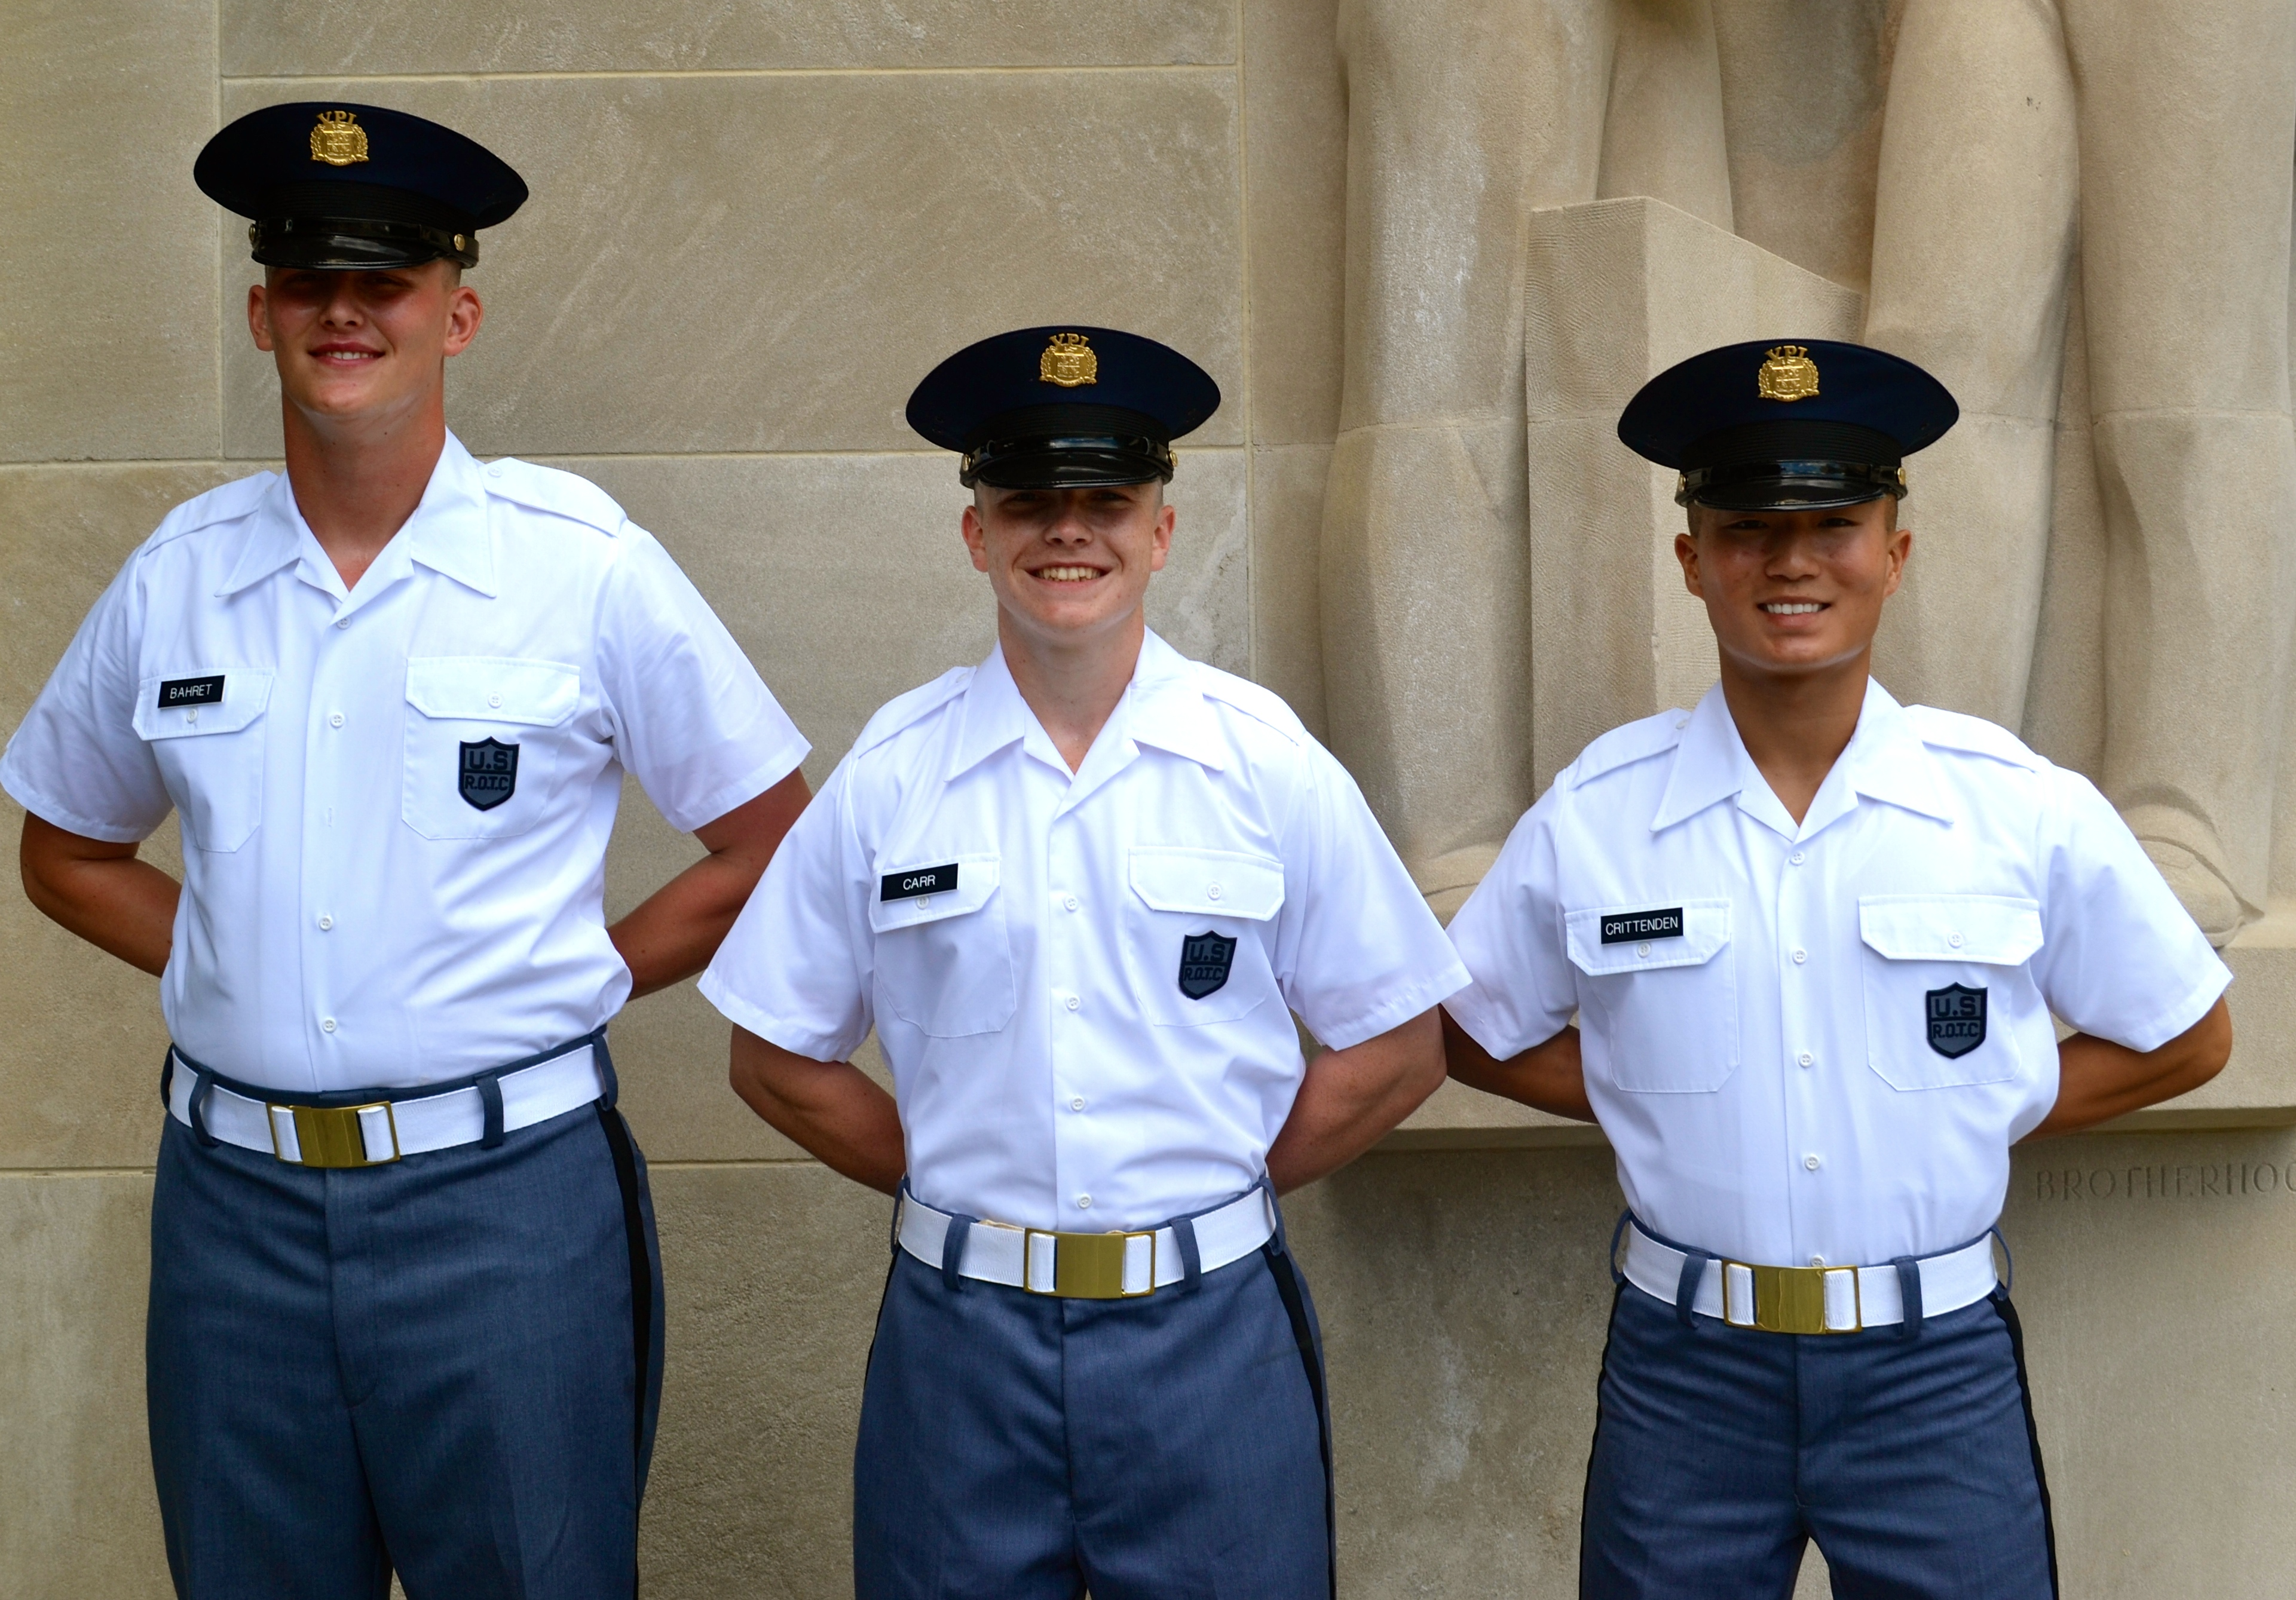 From left to right are Cadets Joseph Bahret, Christian Carr, and Sean Crittenden standing in front of the Pylons.